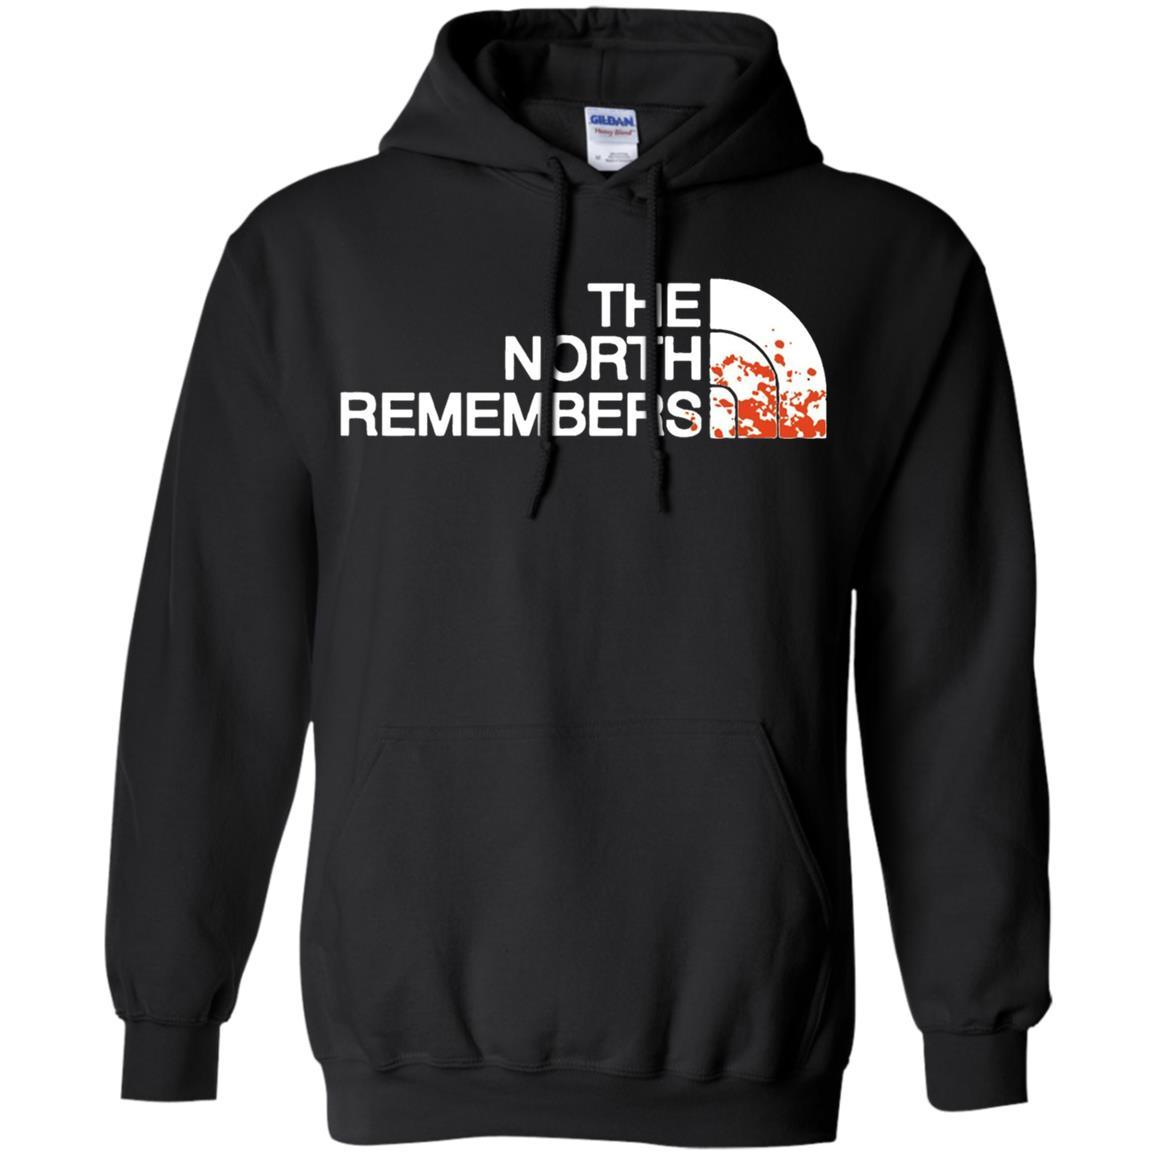 The North Remembers North Face Got - Pullover Hoodie Black / 5XL